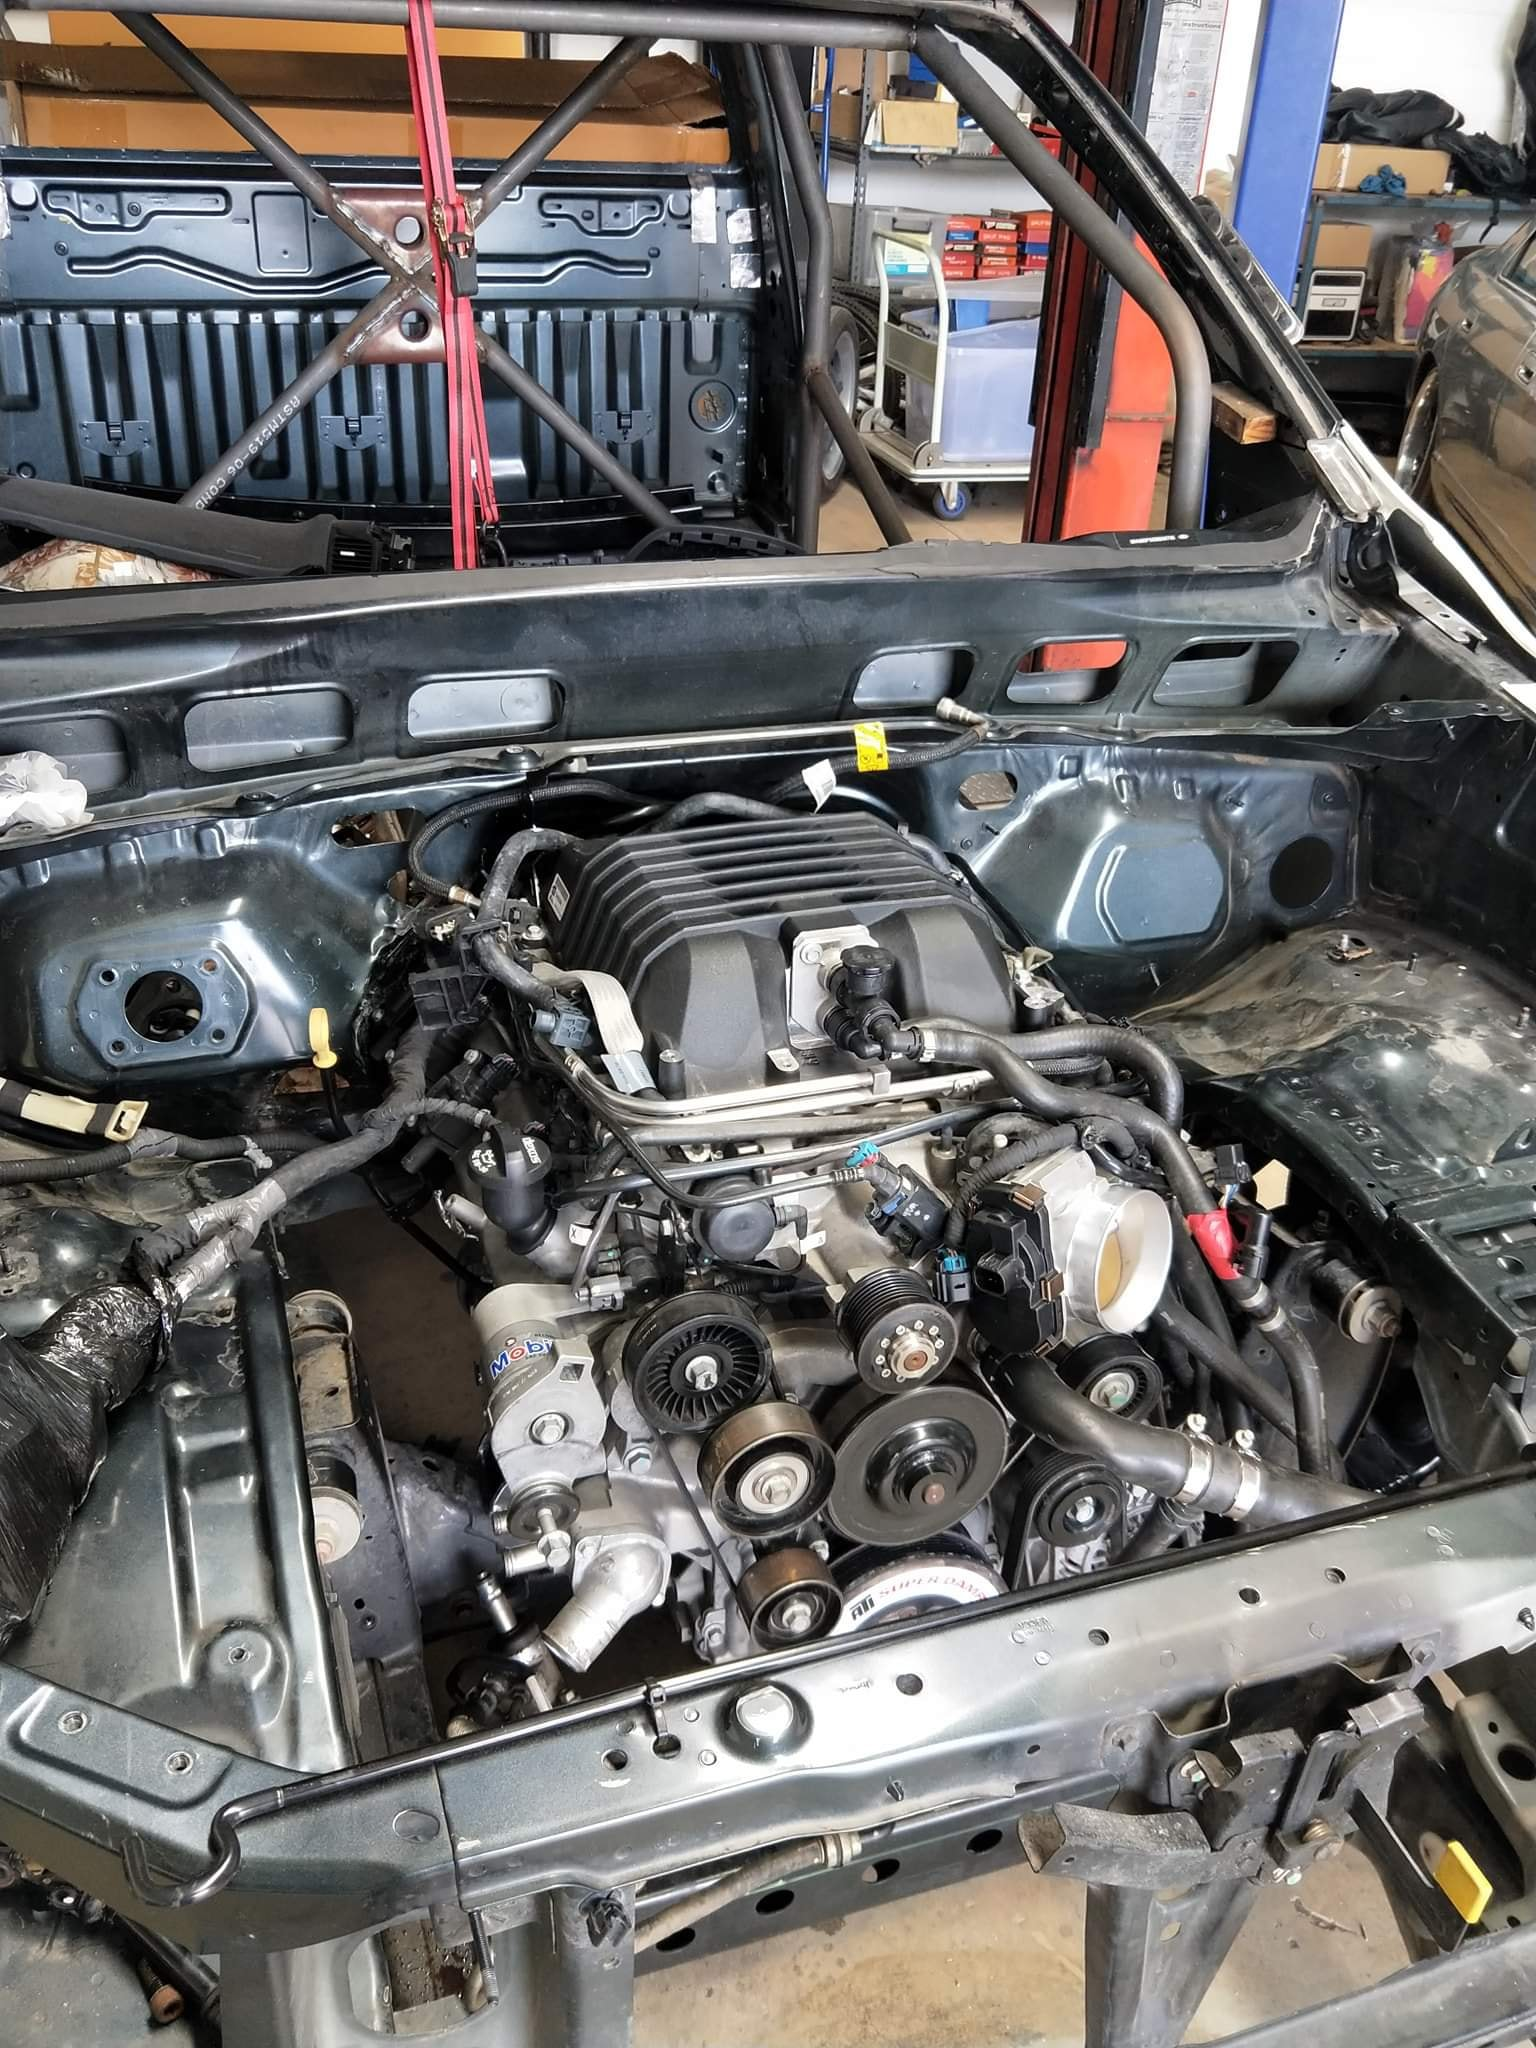 Ford ranger engine swap guide